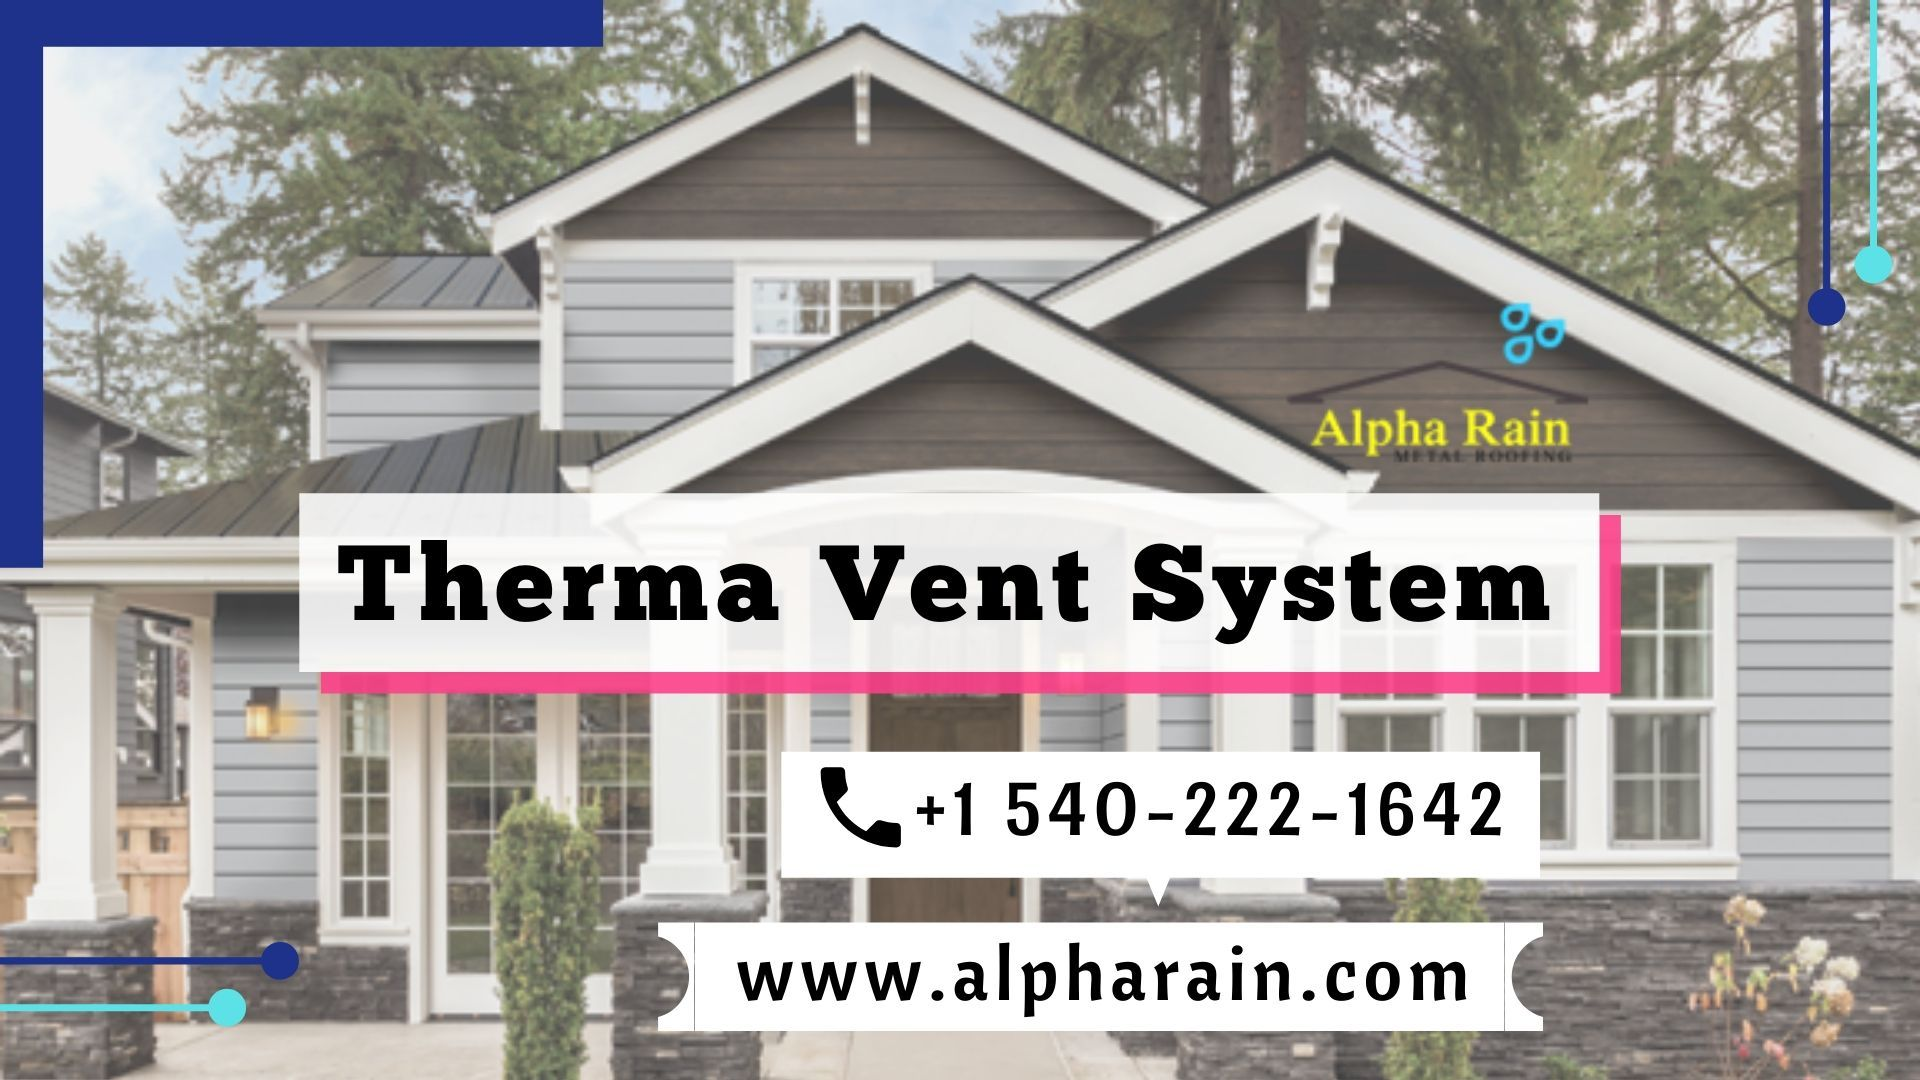 Install Therma Vent System By A Proper Technique Which Not Only Keeps Home Cool But Also Secure Mold And Mildew From Occurring Vented Home Cooler Save Energy